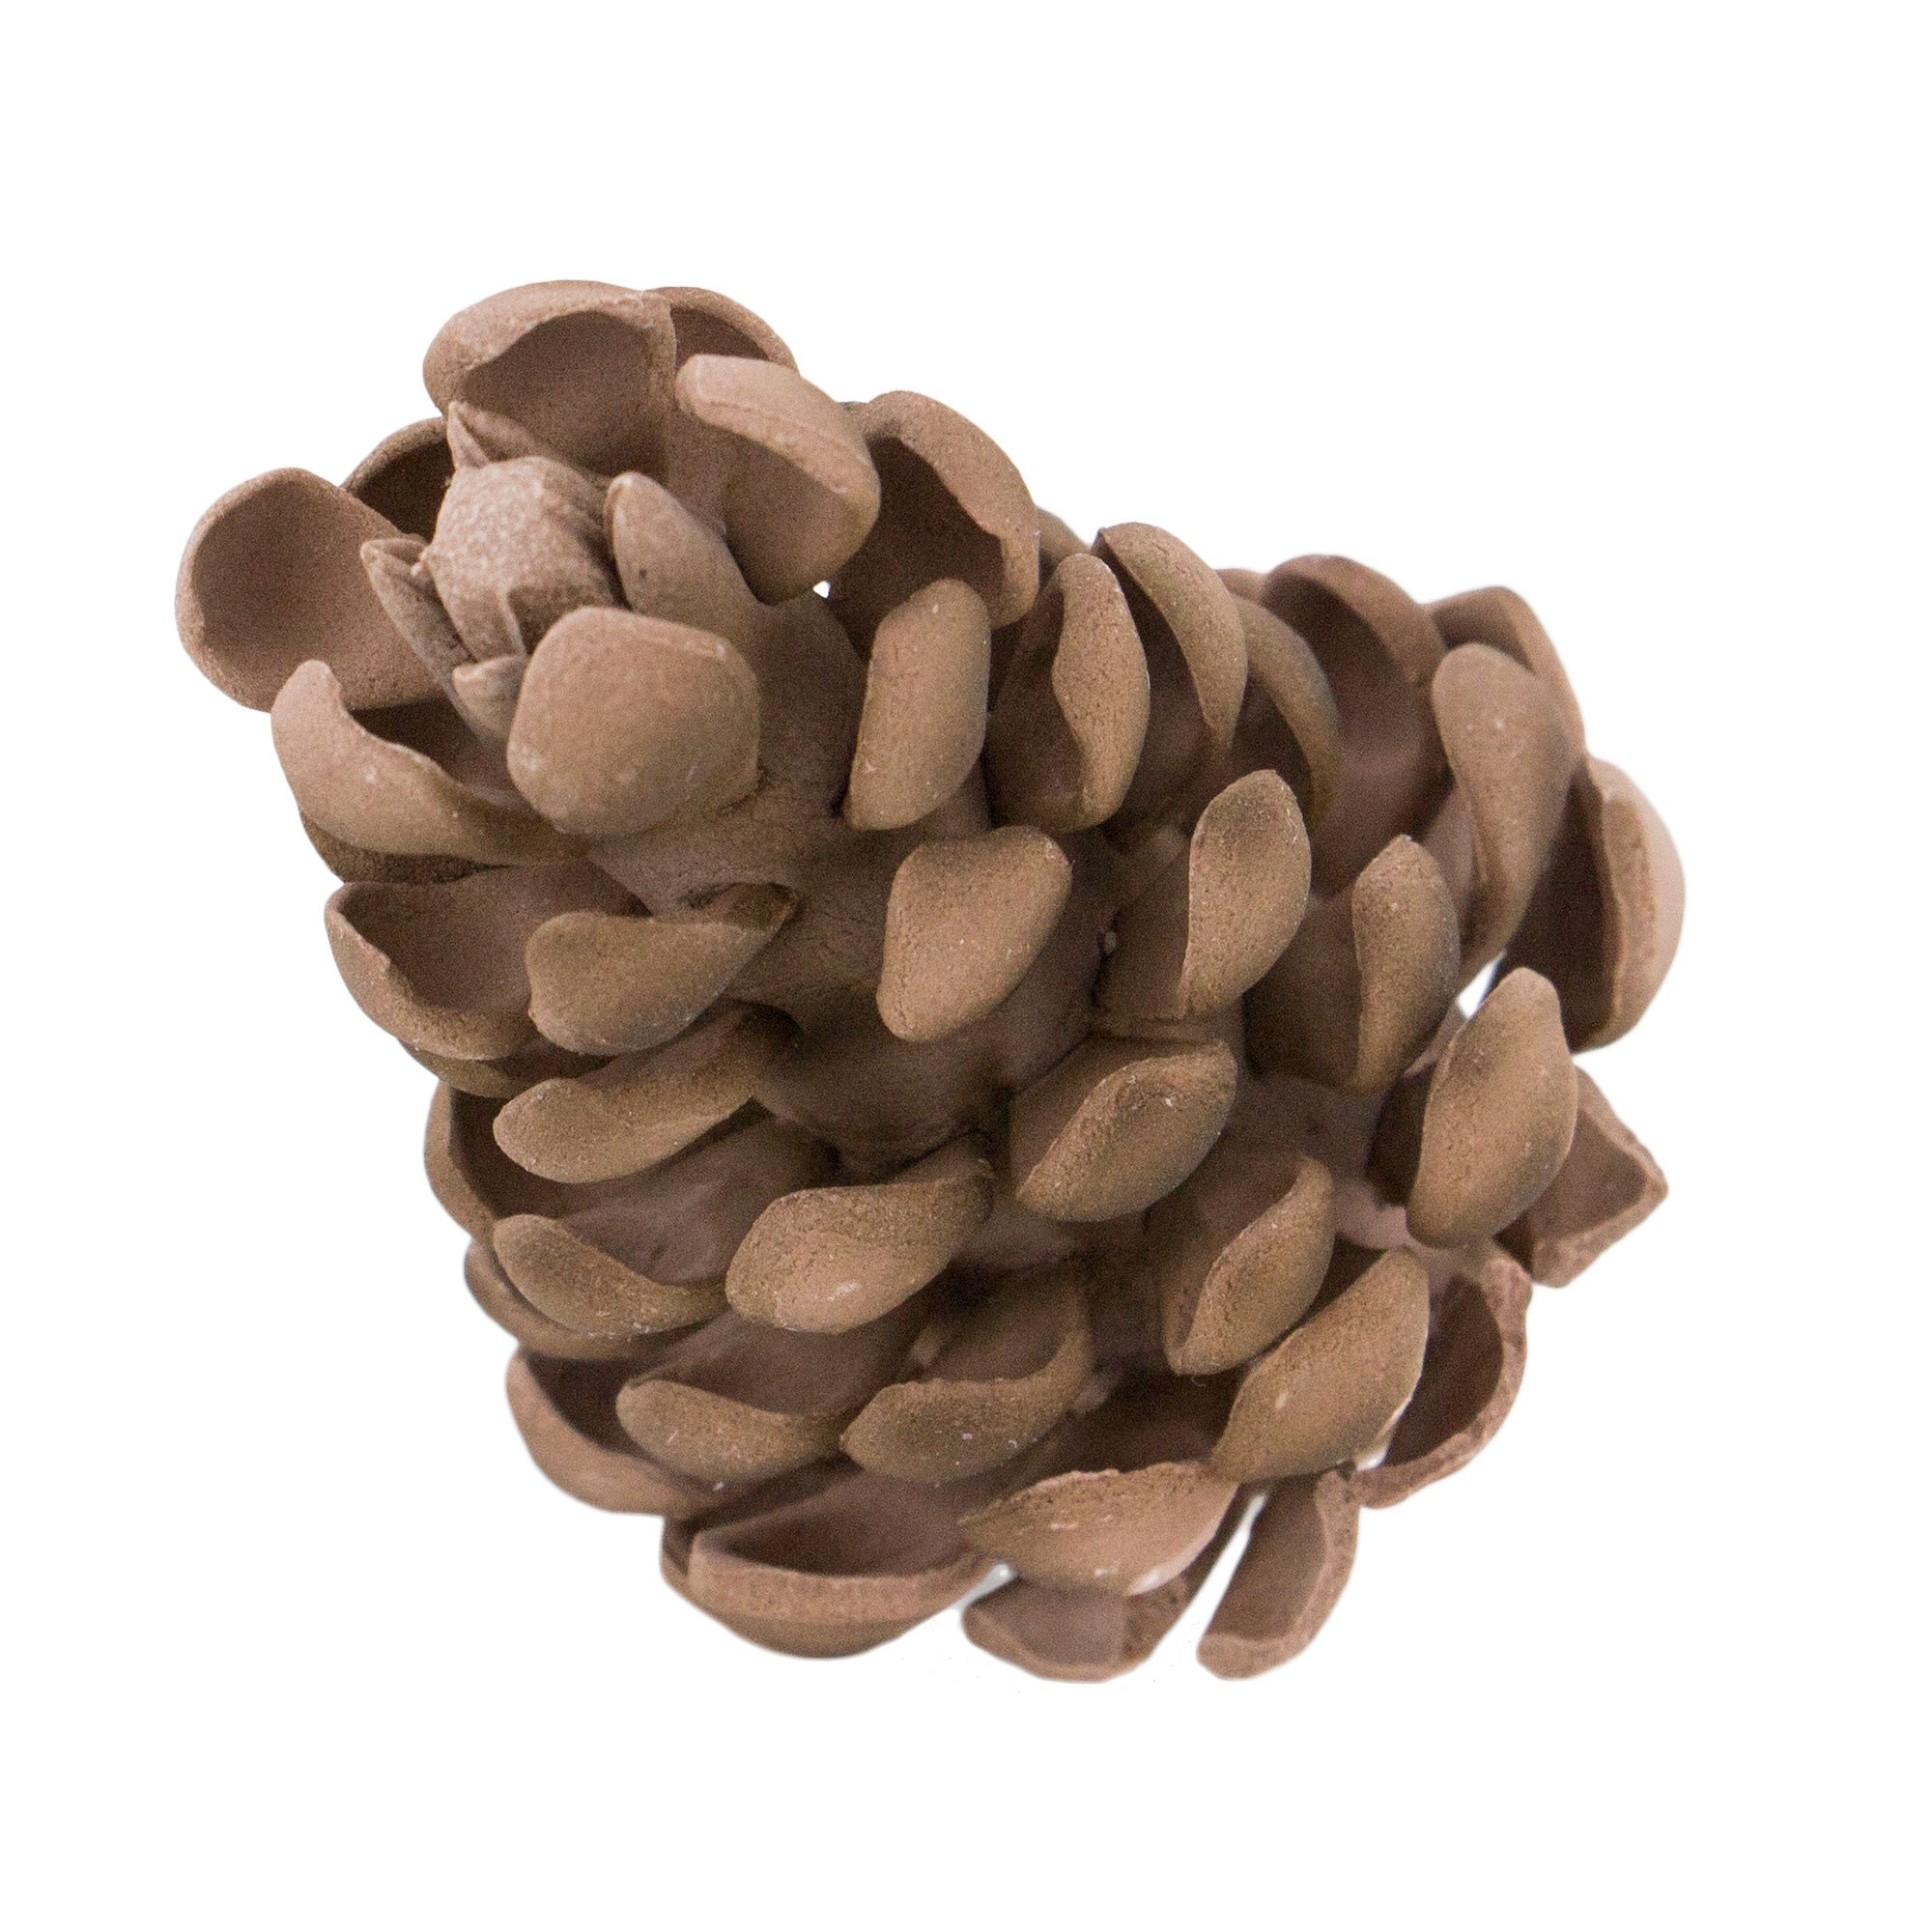 Pinecone Large, 20 Count